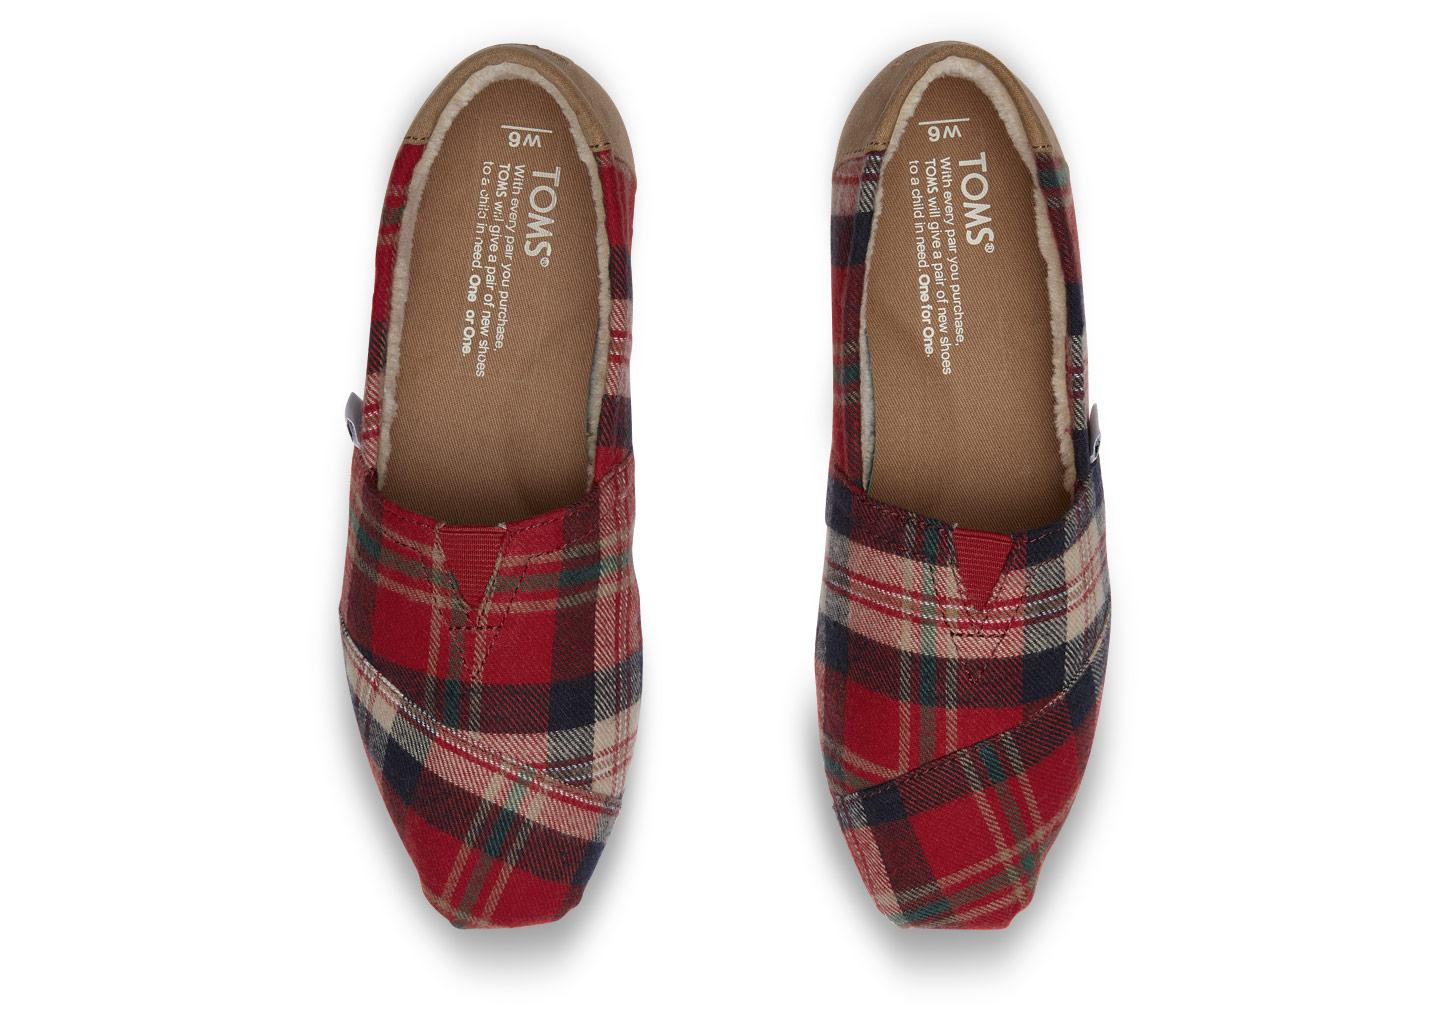 fce191b8f87e Lyst - TOMS Holiday Plaid Flat Shoes in Red